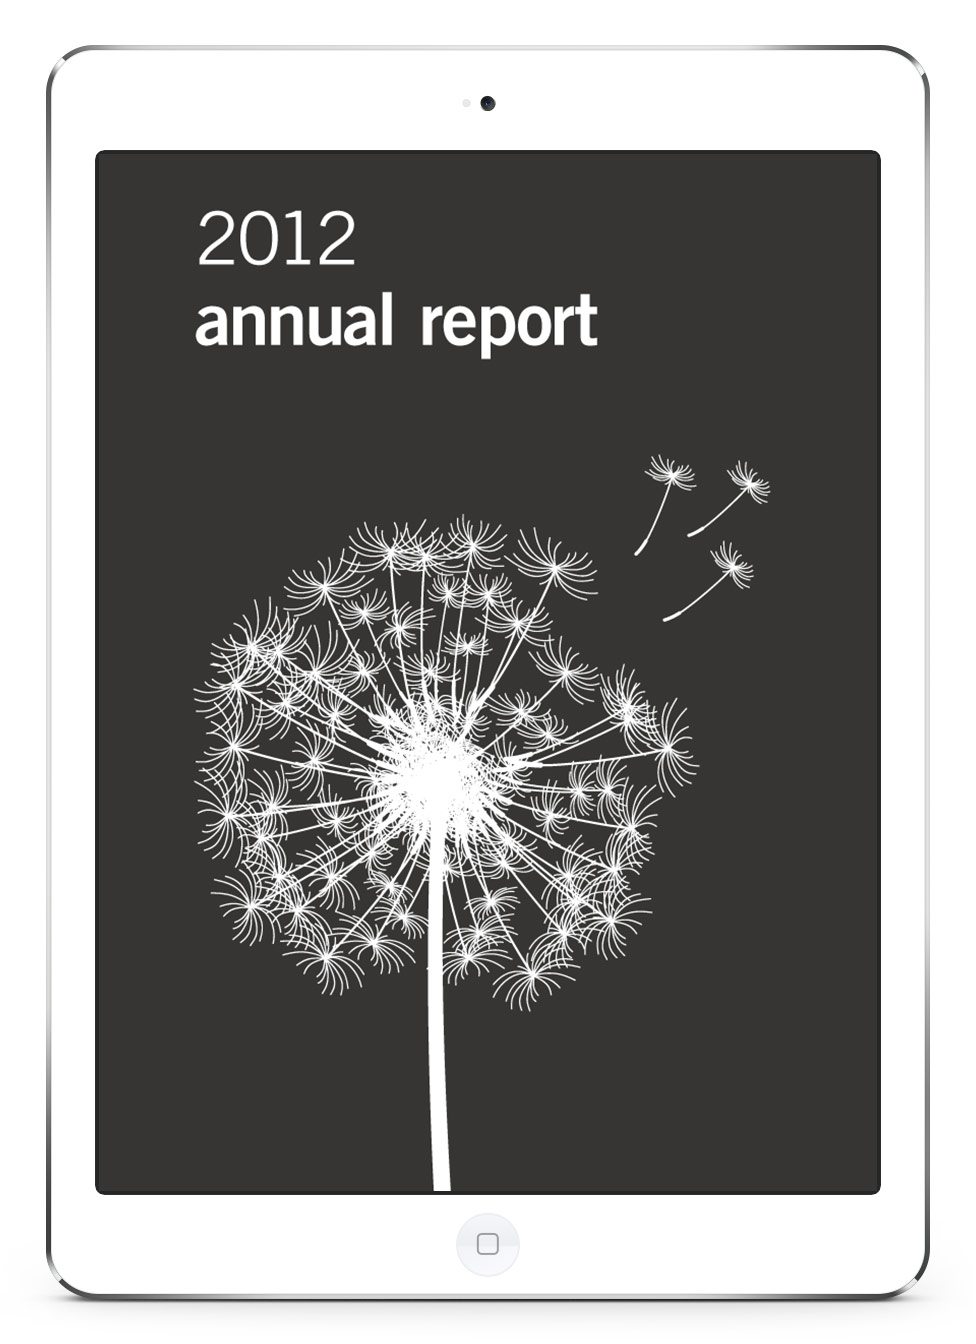 dunnhumby Annual Report App Home Page